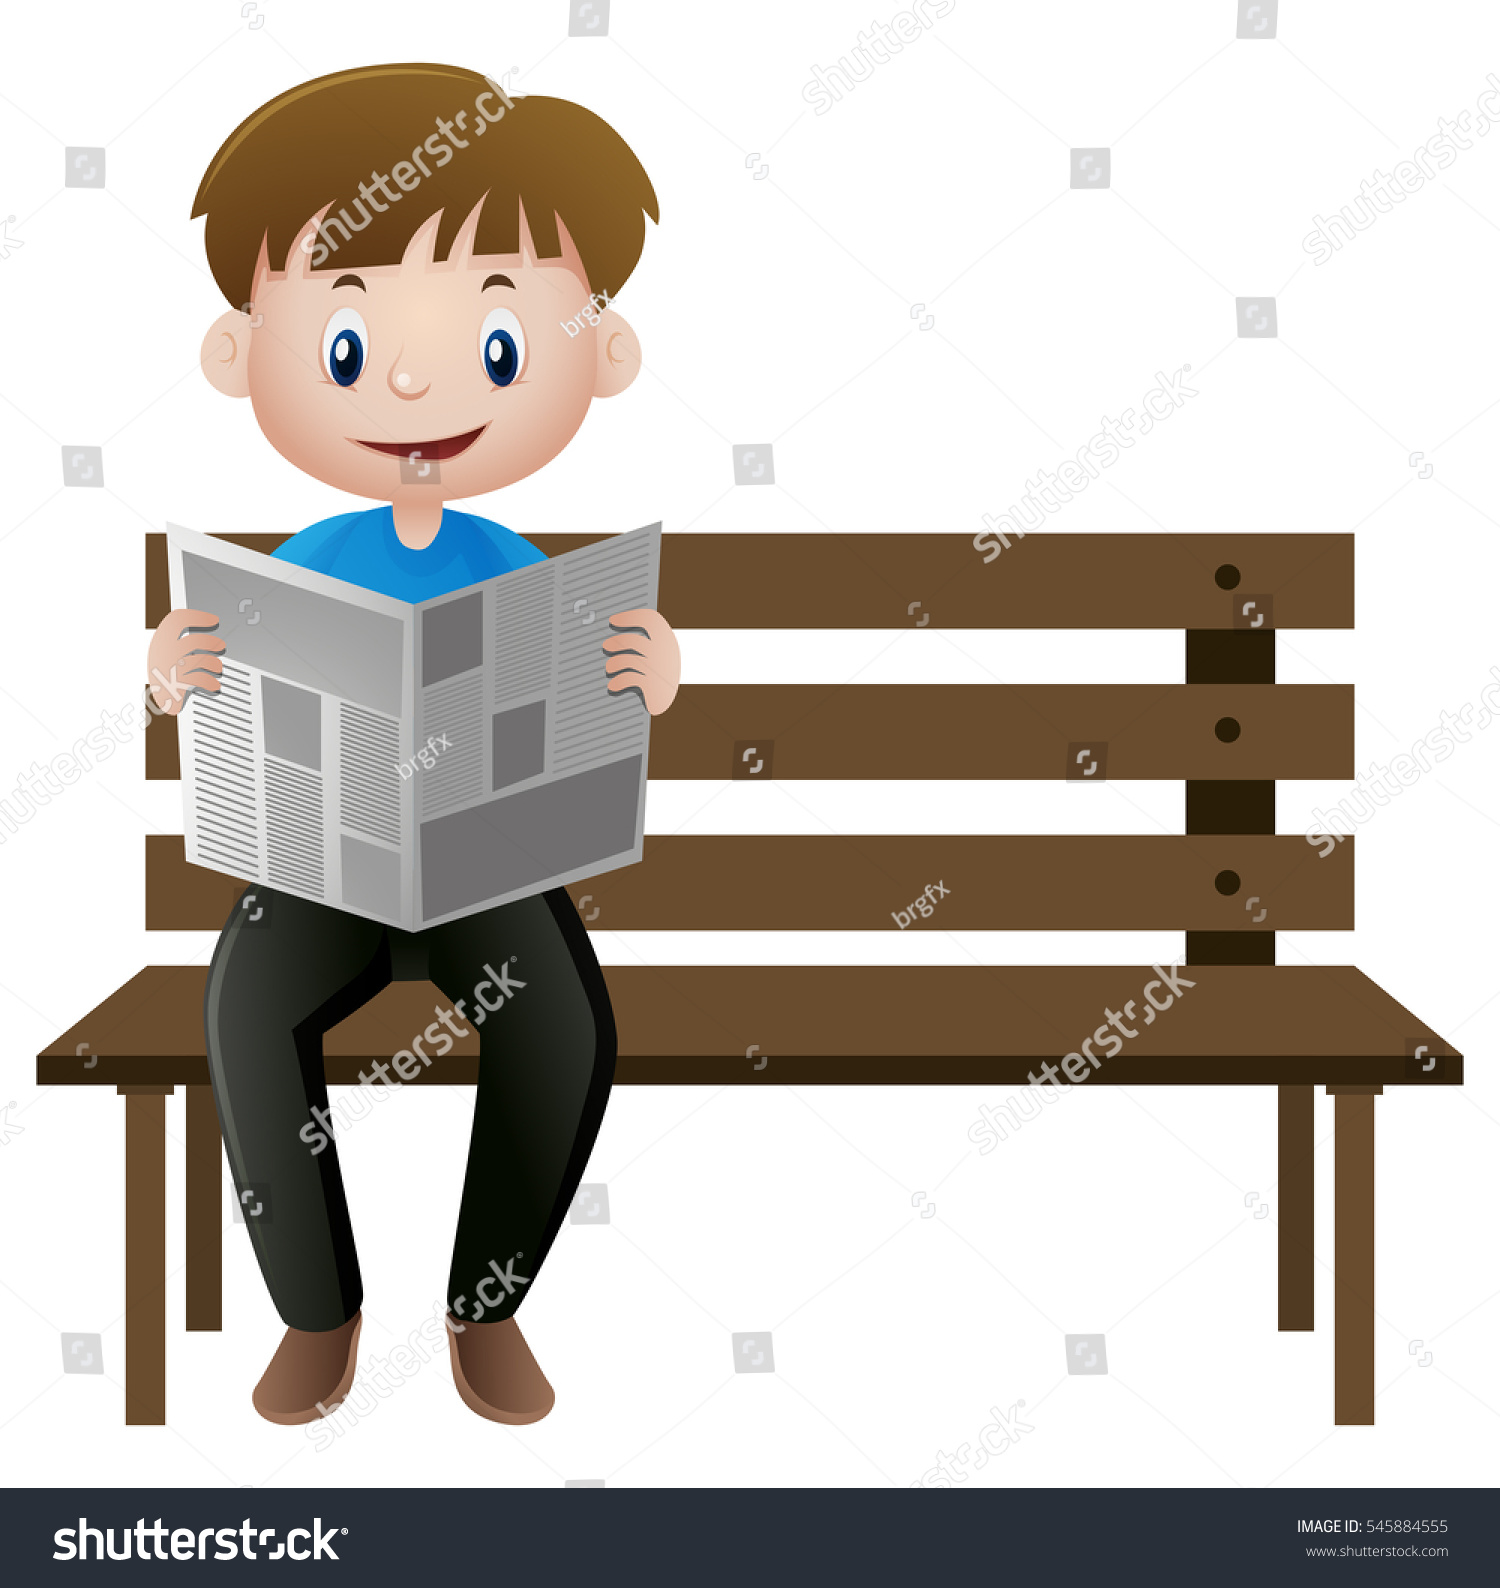 man reading newspaper on bench illustration stock vector (royalty